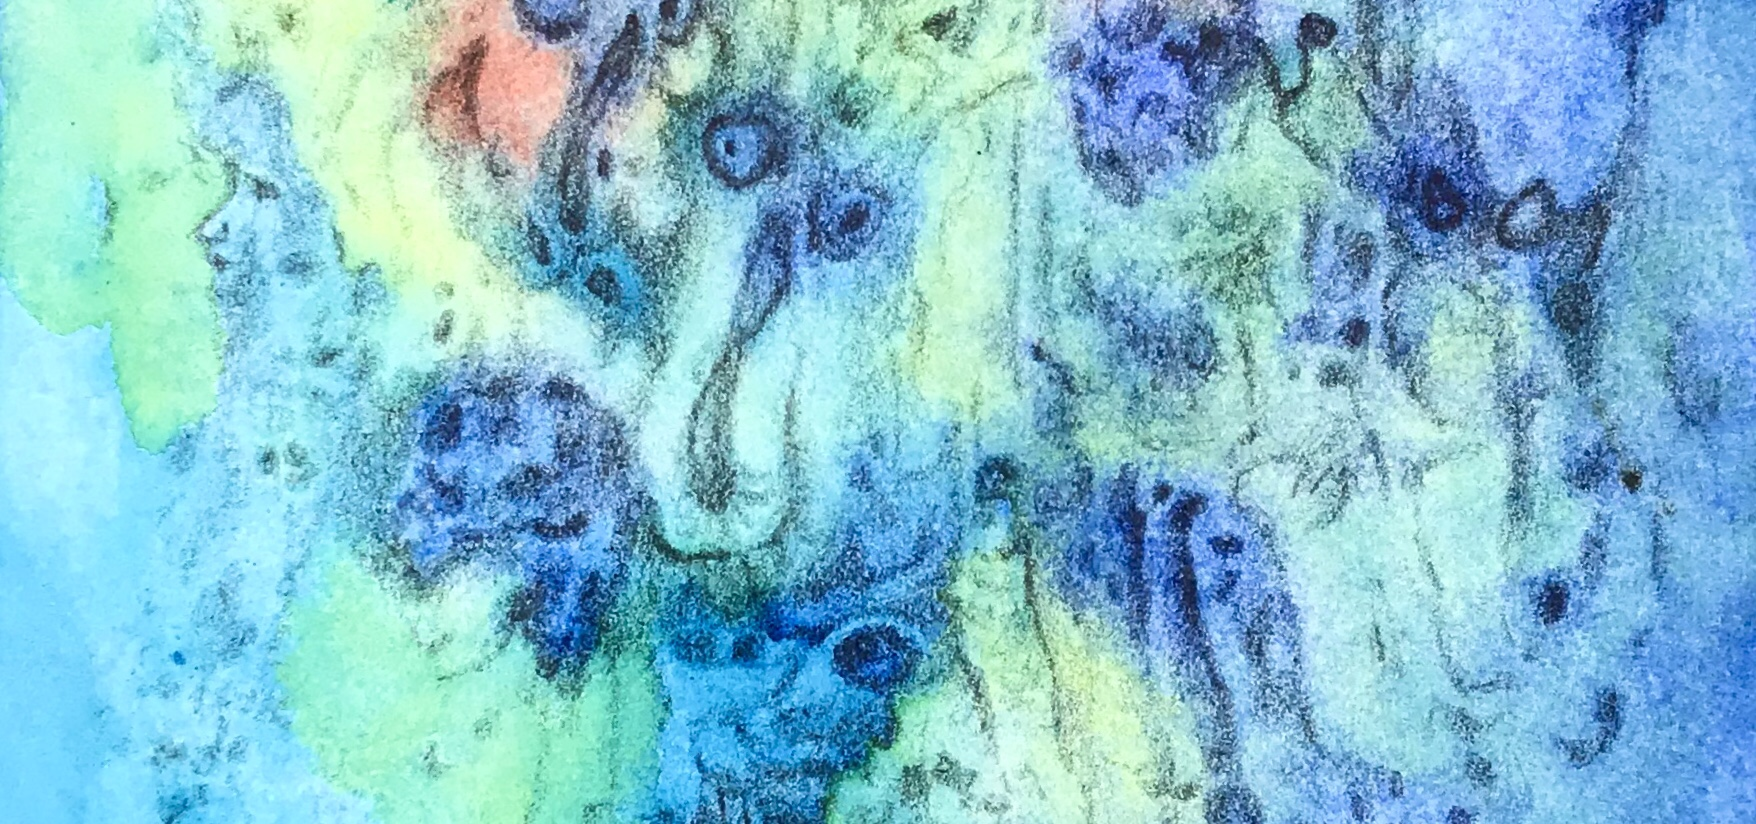 Detail of a phantasmagorical drawing over a watercolor painting by MJ seal